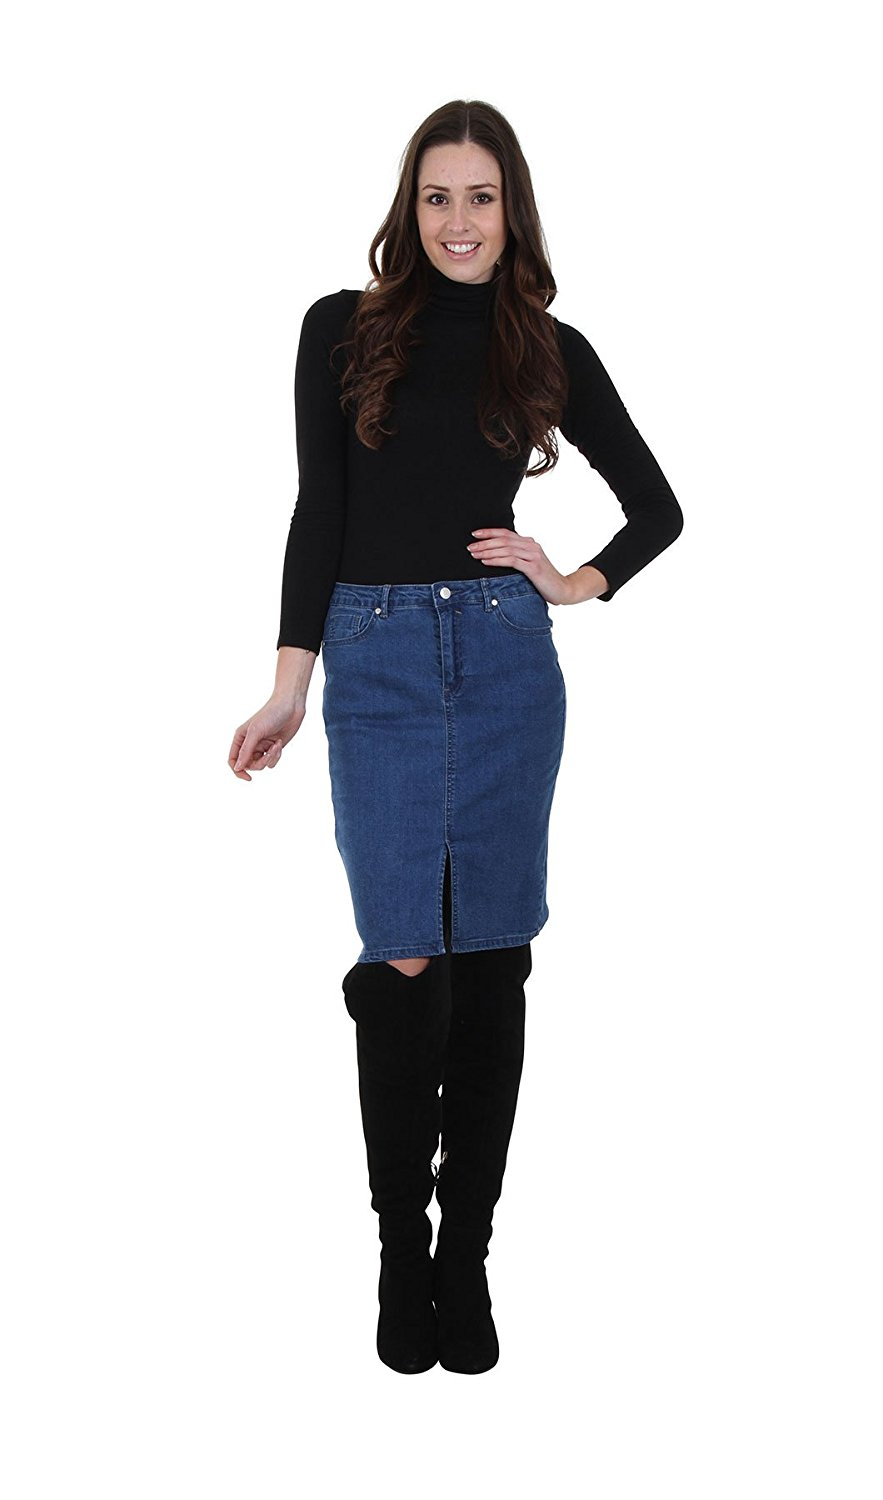 bc71112ca8 Get Quotations · Queen Hearts Knee Length Jean Skirt With Front Split  Stonewash Womens Denim Skirt, Pencil Ski